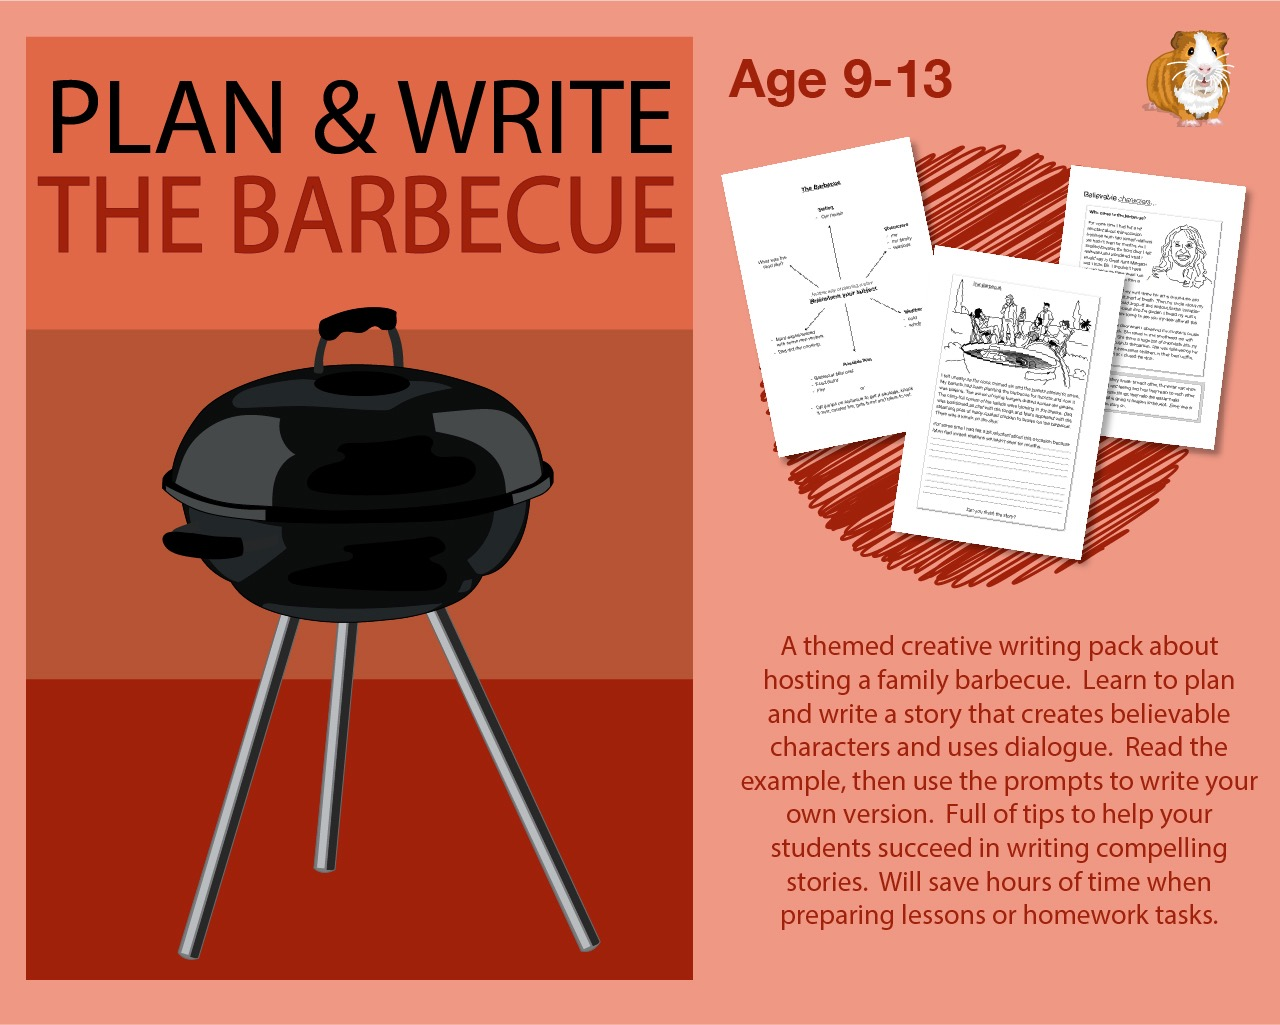 Plan And Write A Story Called 'The Barbecue' (9-13 years)